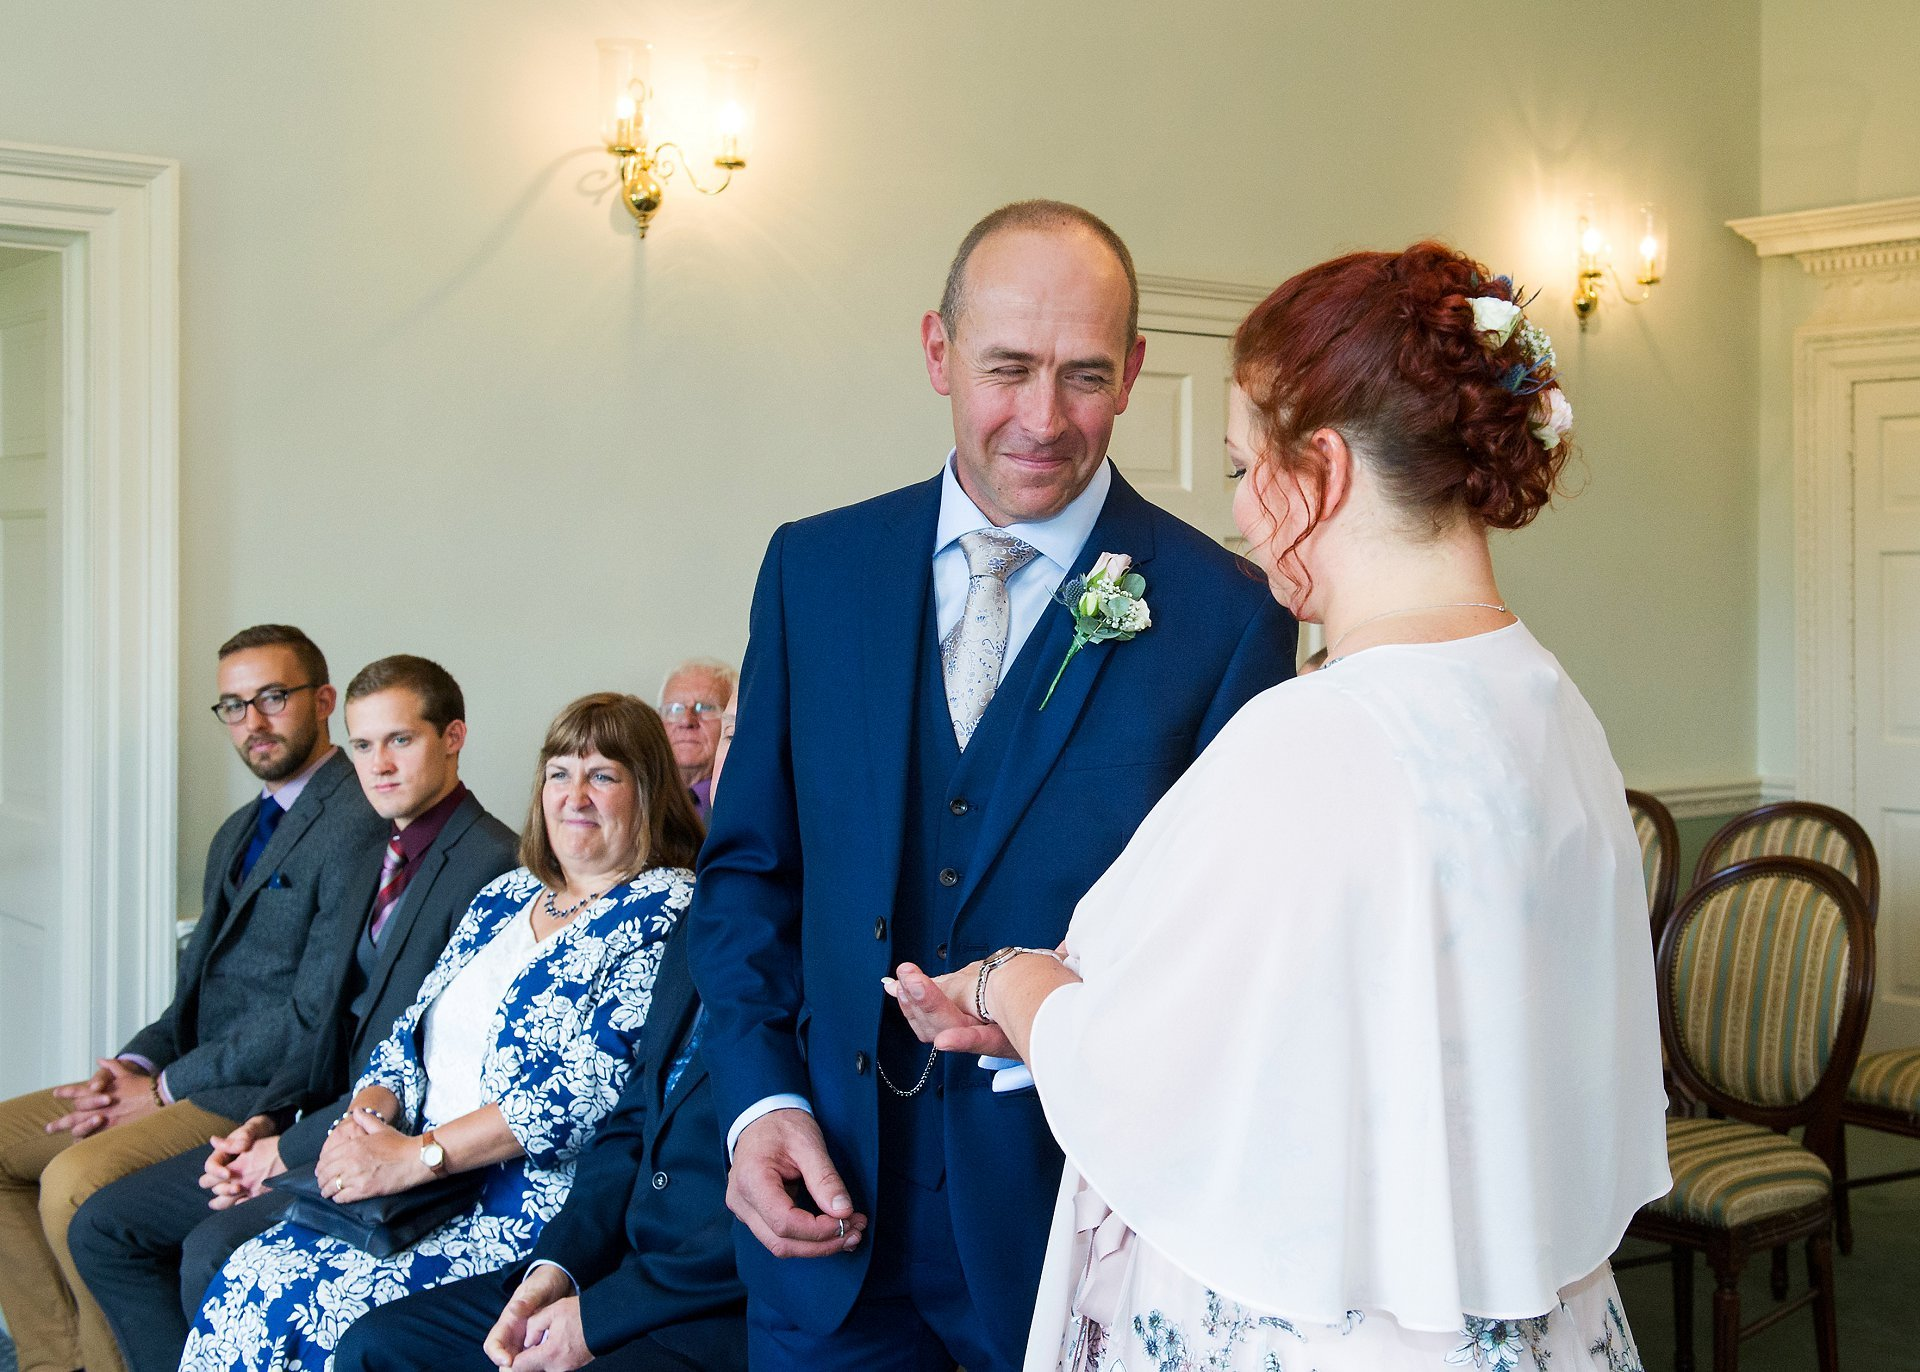 Horsham Registration Office is a charming West Sussex wedding venue with a garden and nearby cafe and plenty of parking - the bride and groom shown here during their Drawing Room civil ceremony